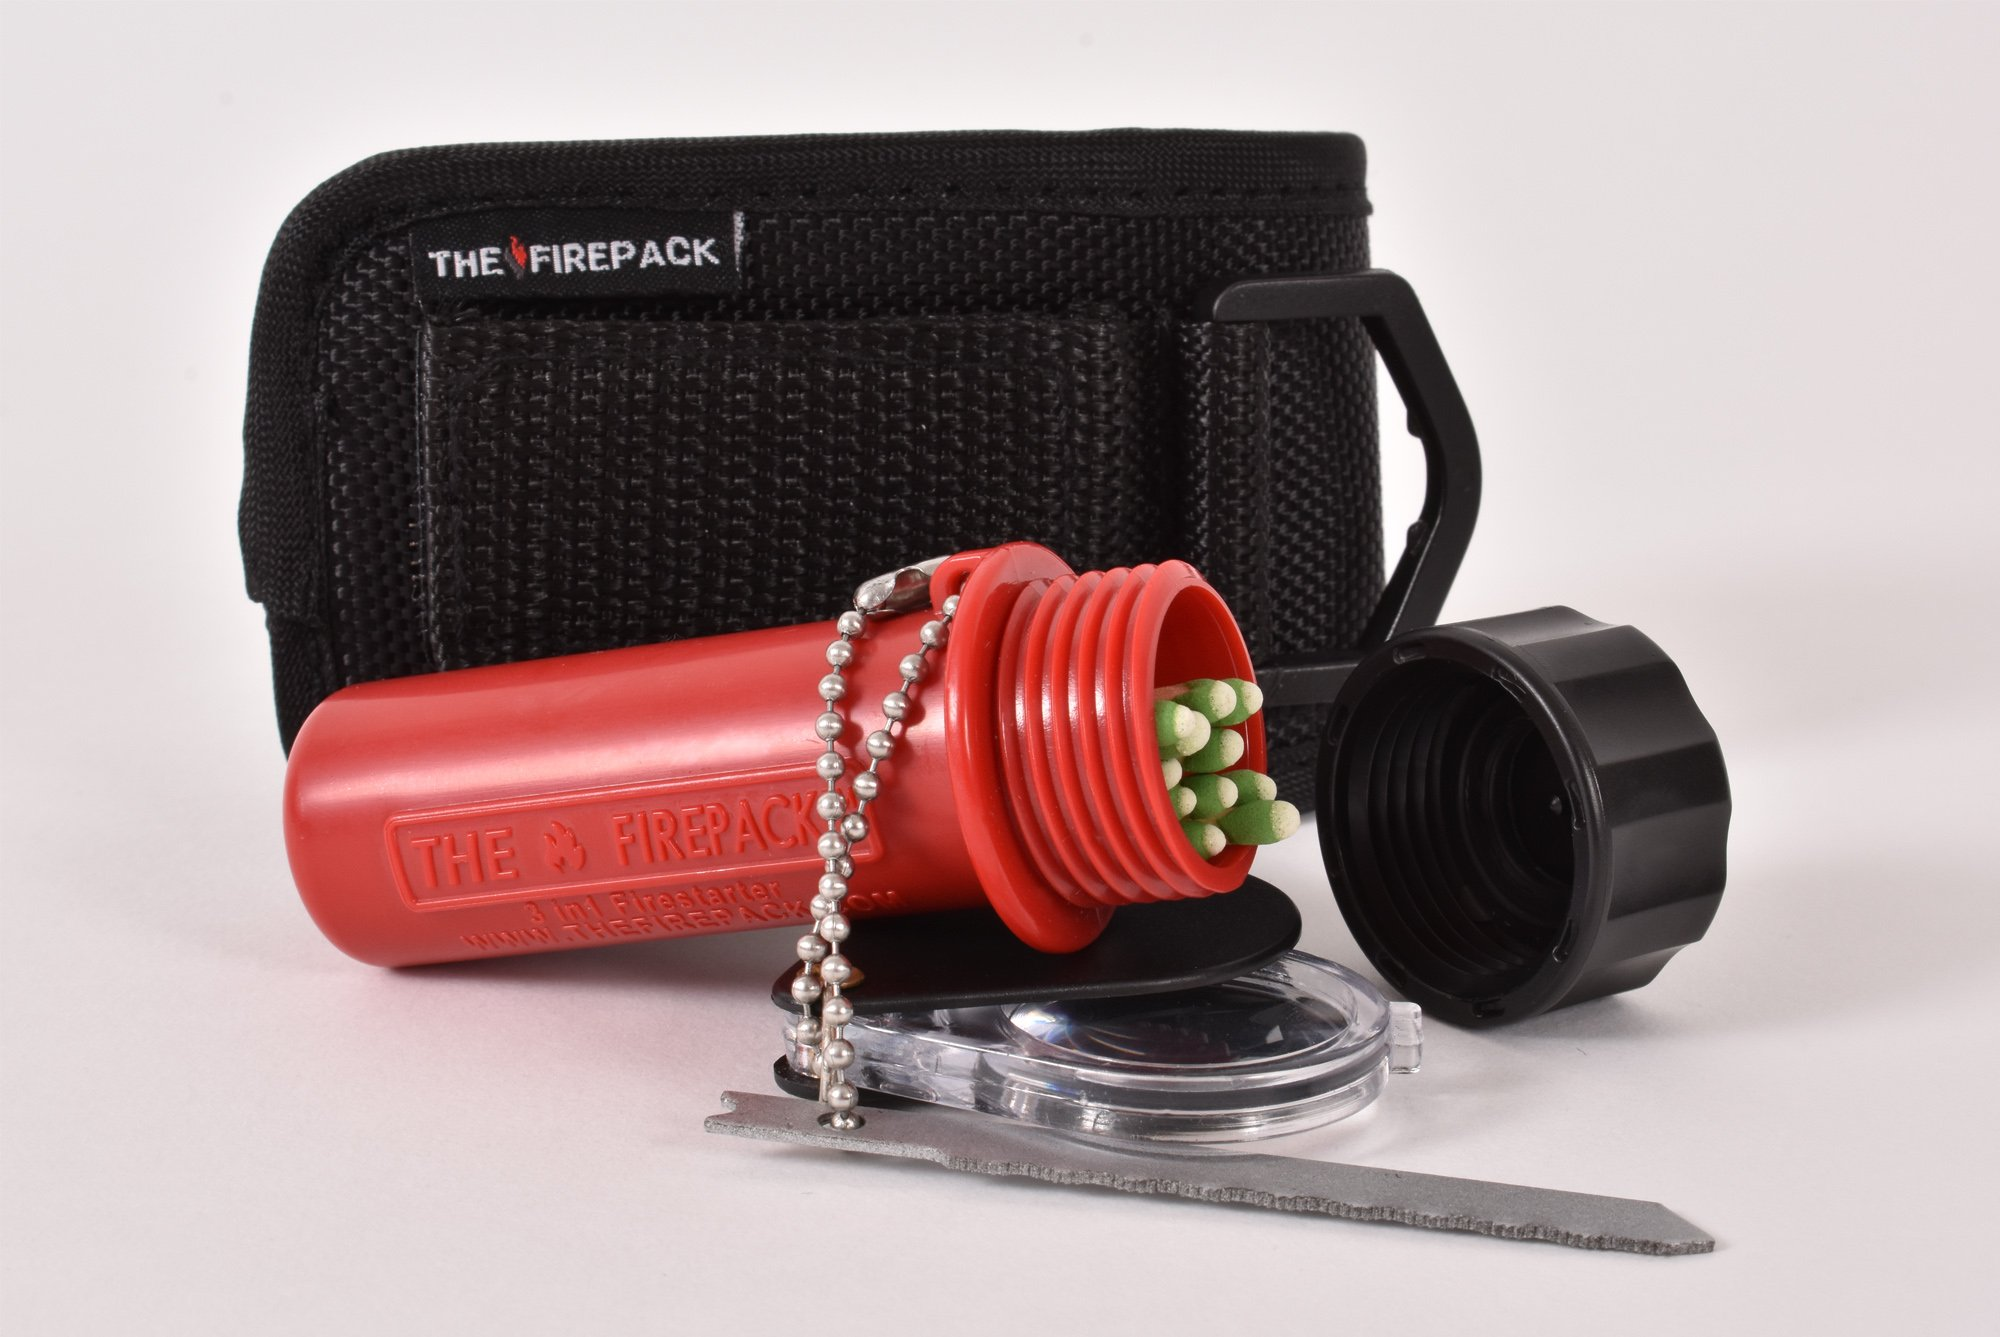 The FirePack 3-in-1 Fire Starting Tool